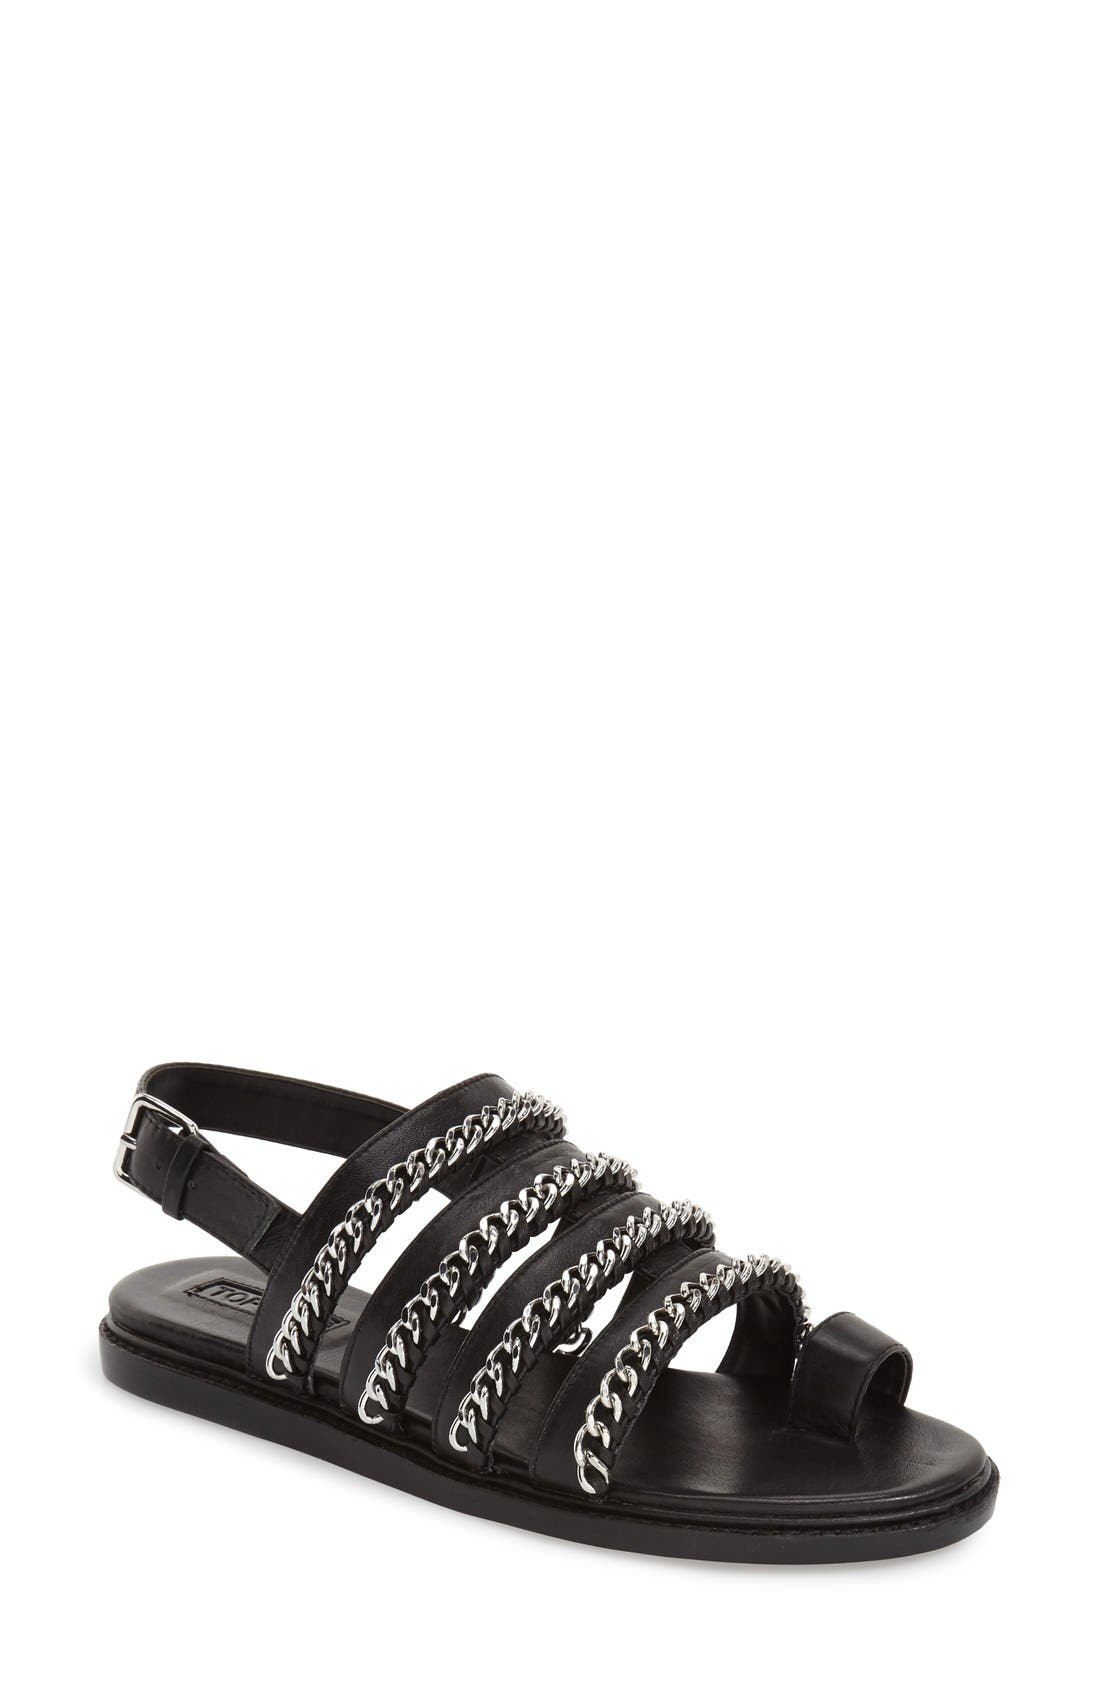 'Flying' Chain Strap Sandal,                             Main thumbnail 1, color,                             Black Leather